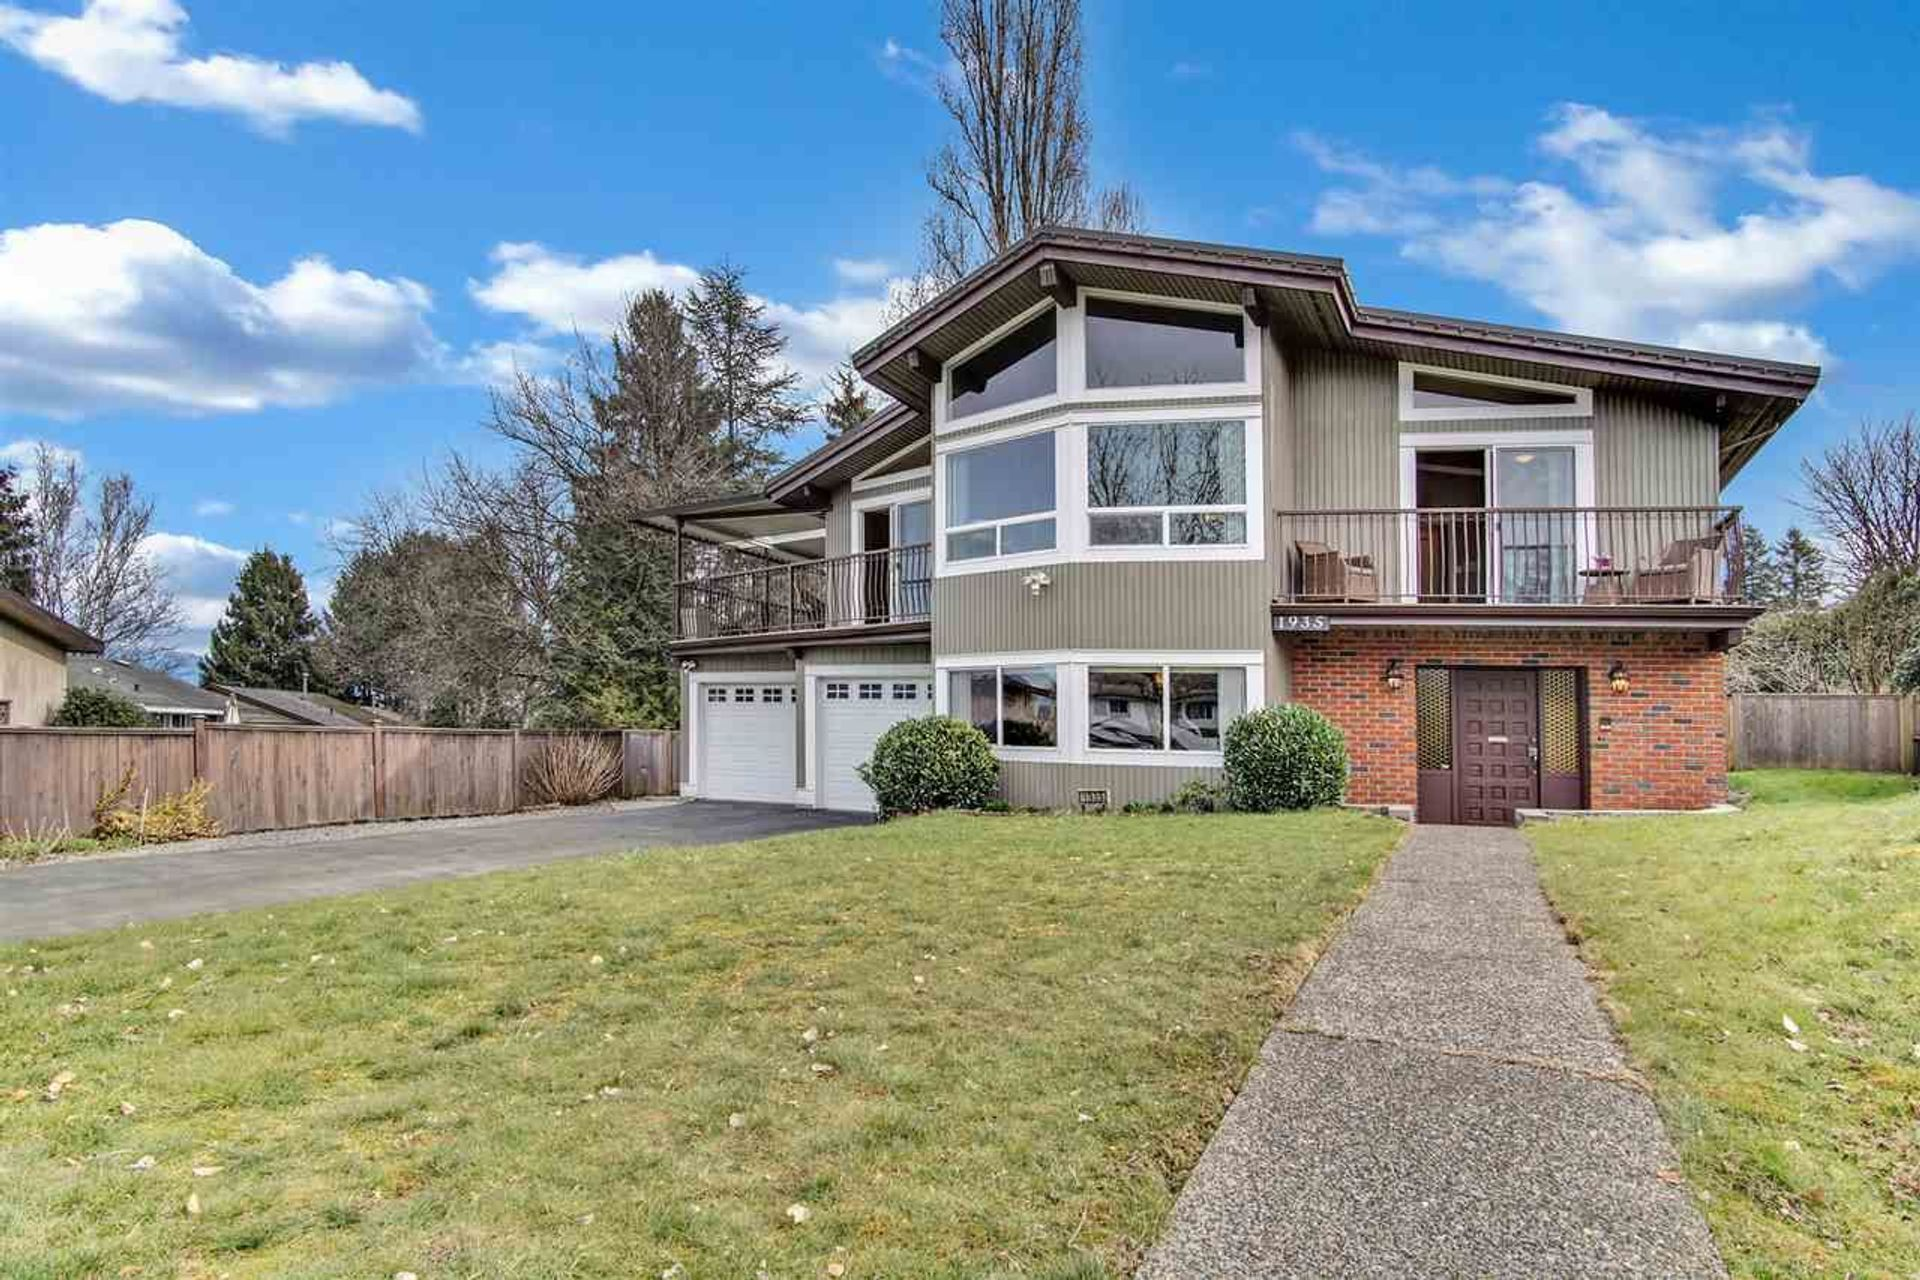 1935 Penny Place, Mary Hill, Port Coquitlam